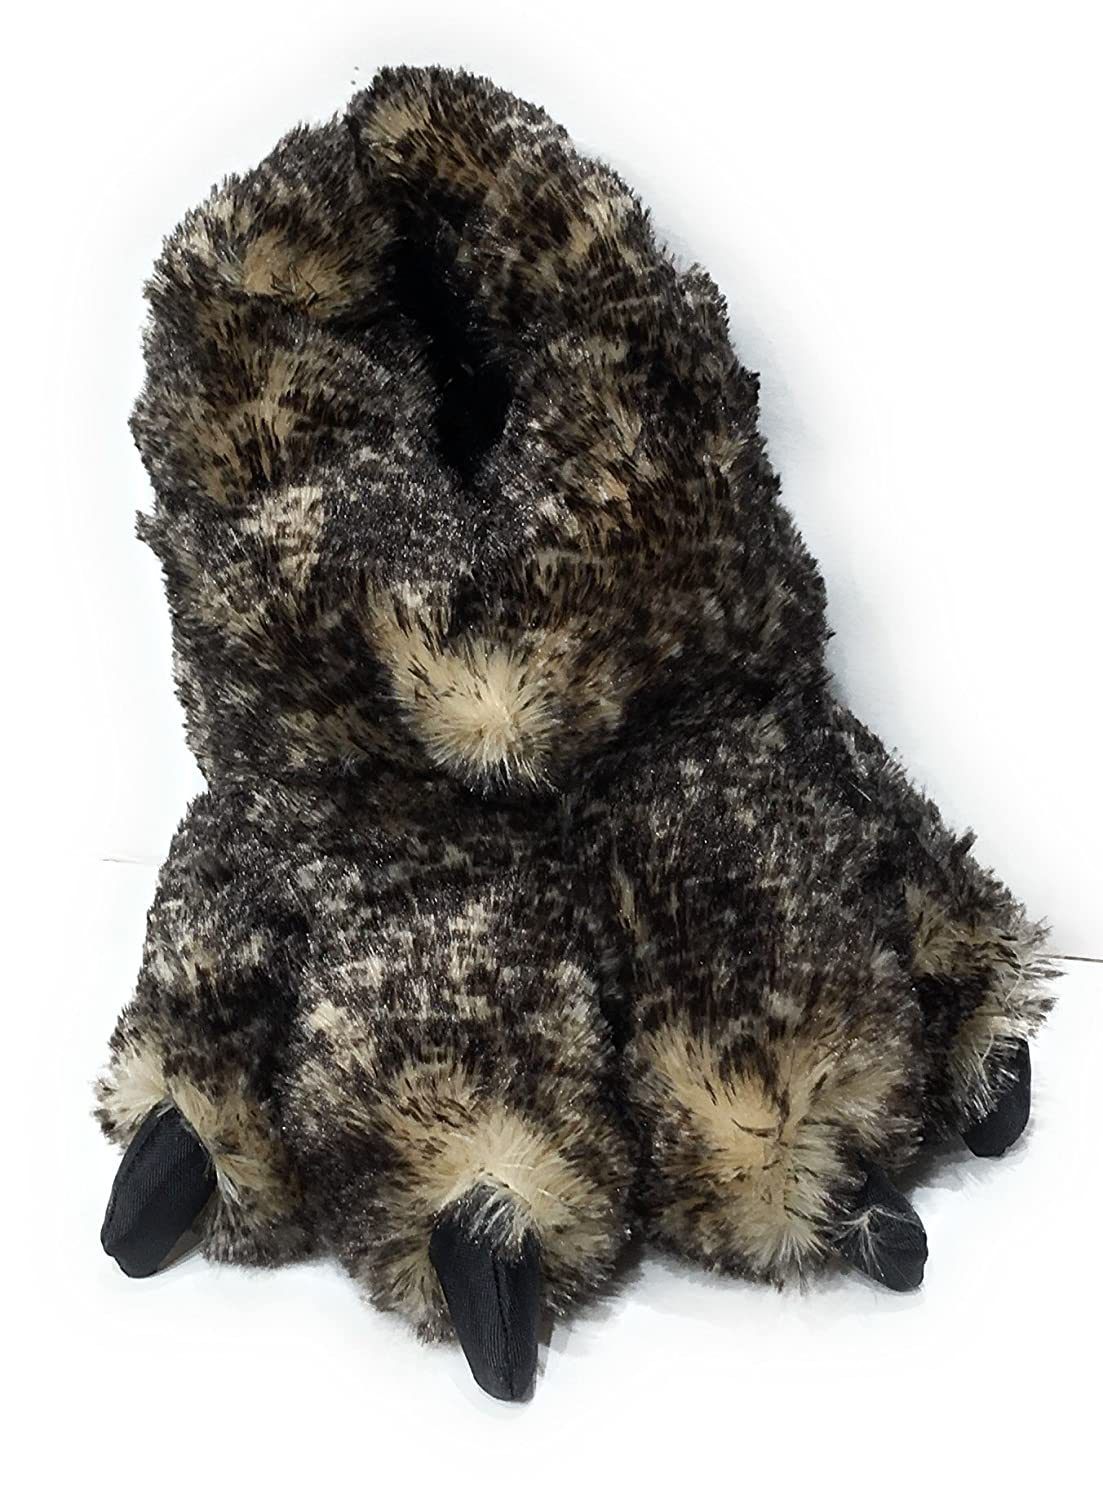 Brown Coyote Sundial Wild Ones Furry Animal Claw Slippers for Toddlers, Kids and Adults